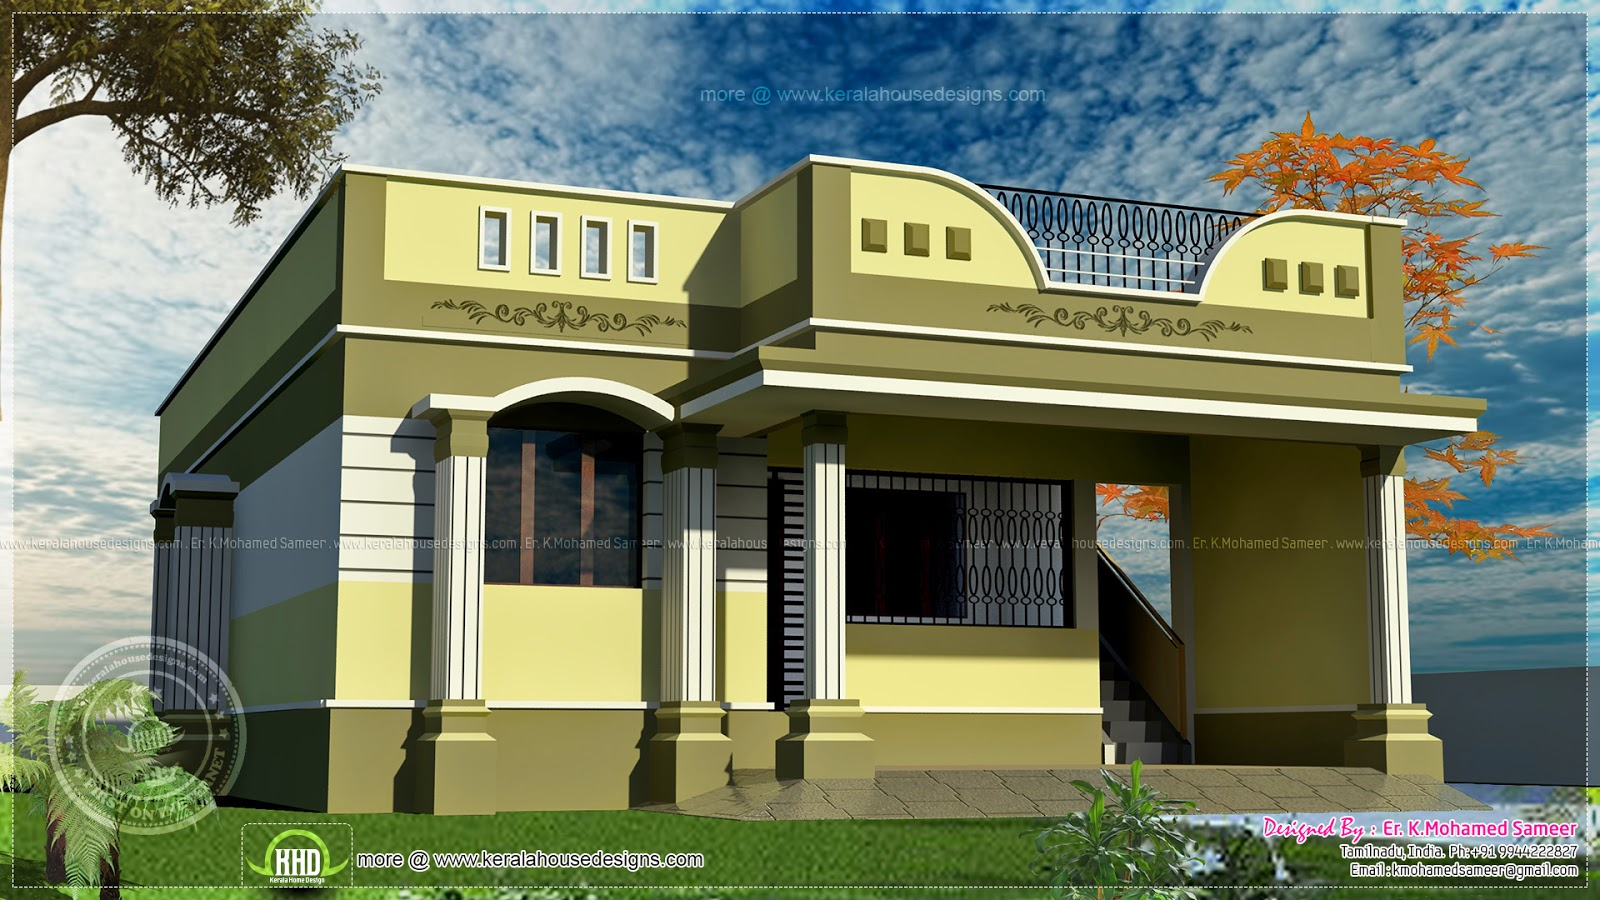 Chennai tamil nadu small house design one floor house for Chennai home designs and plans